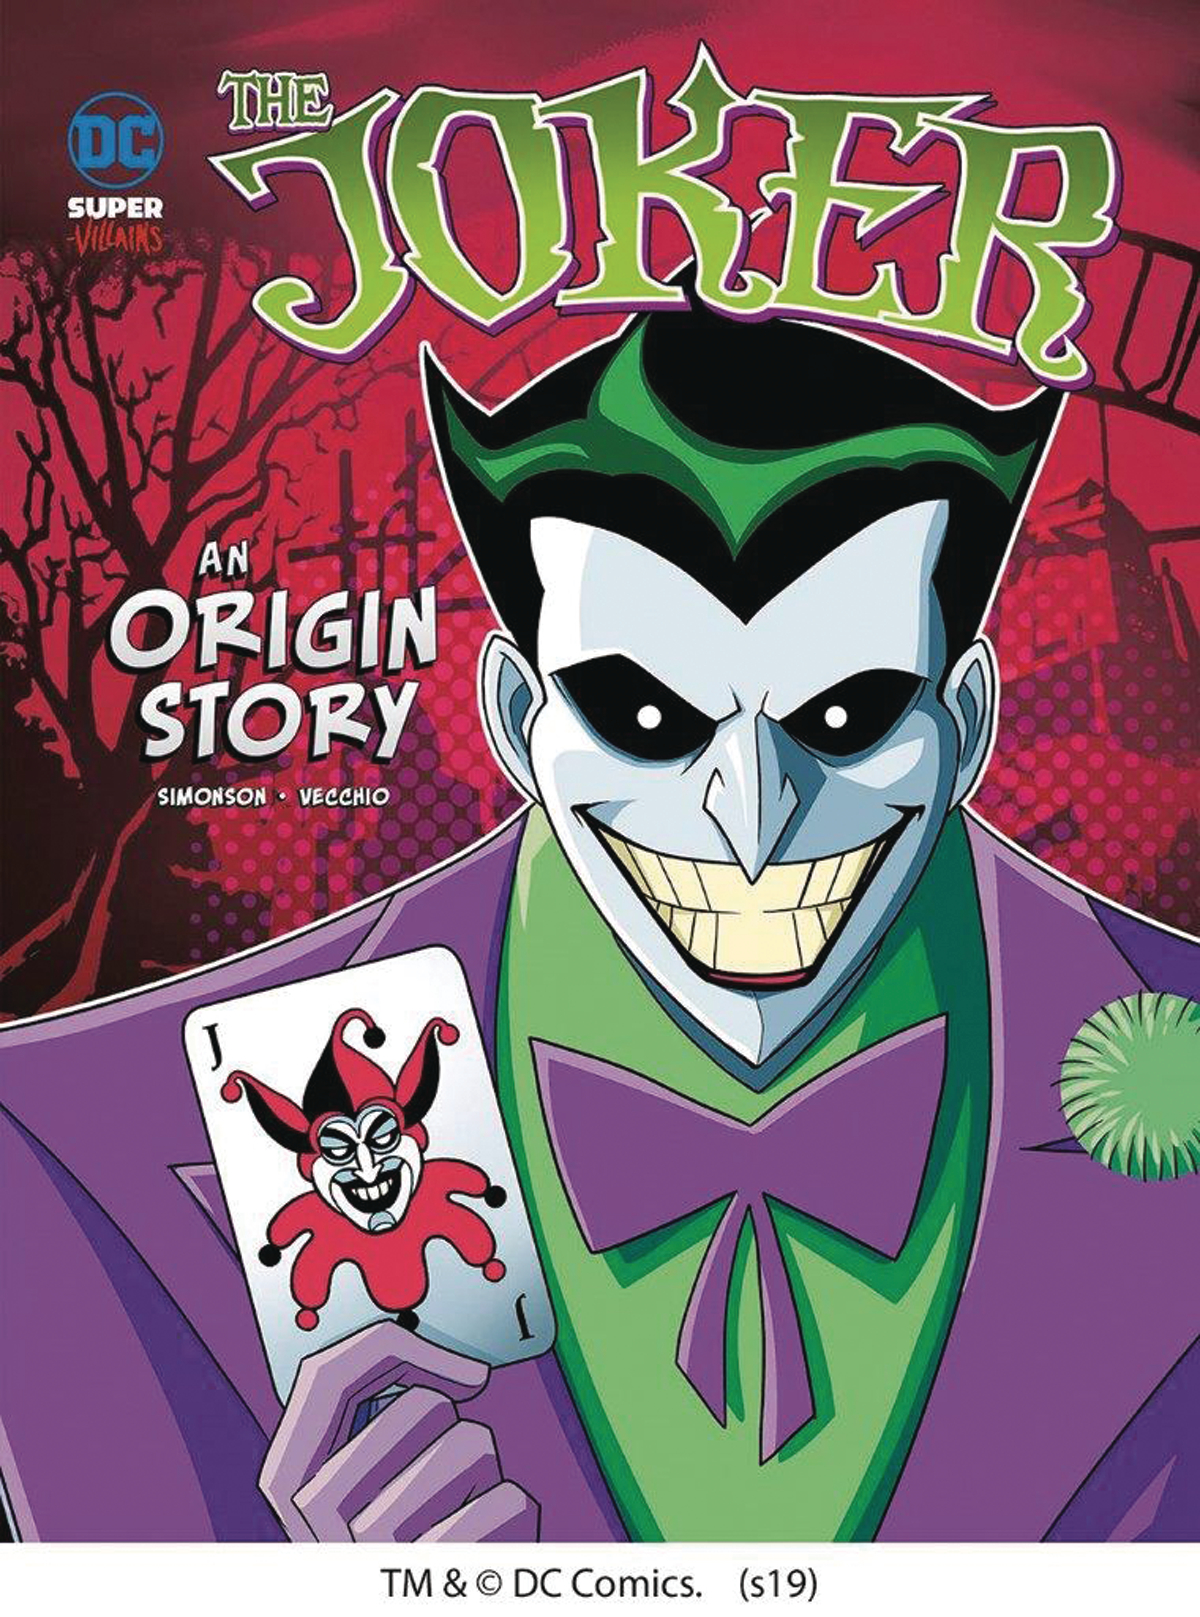 DC SUPER VILLAINS ORIGINS YR TP JOKER